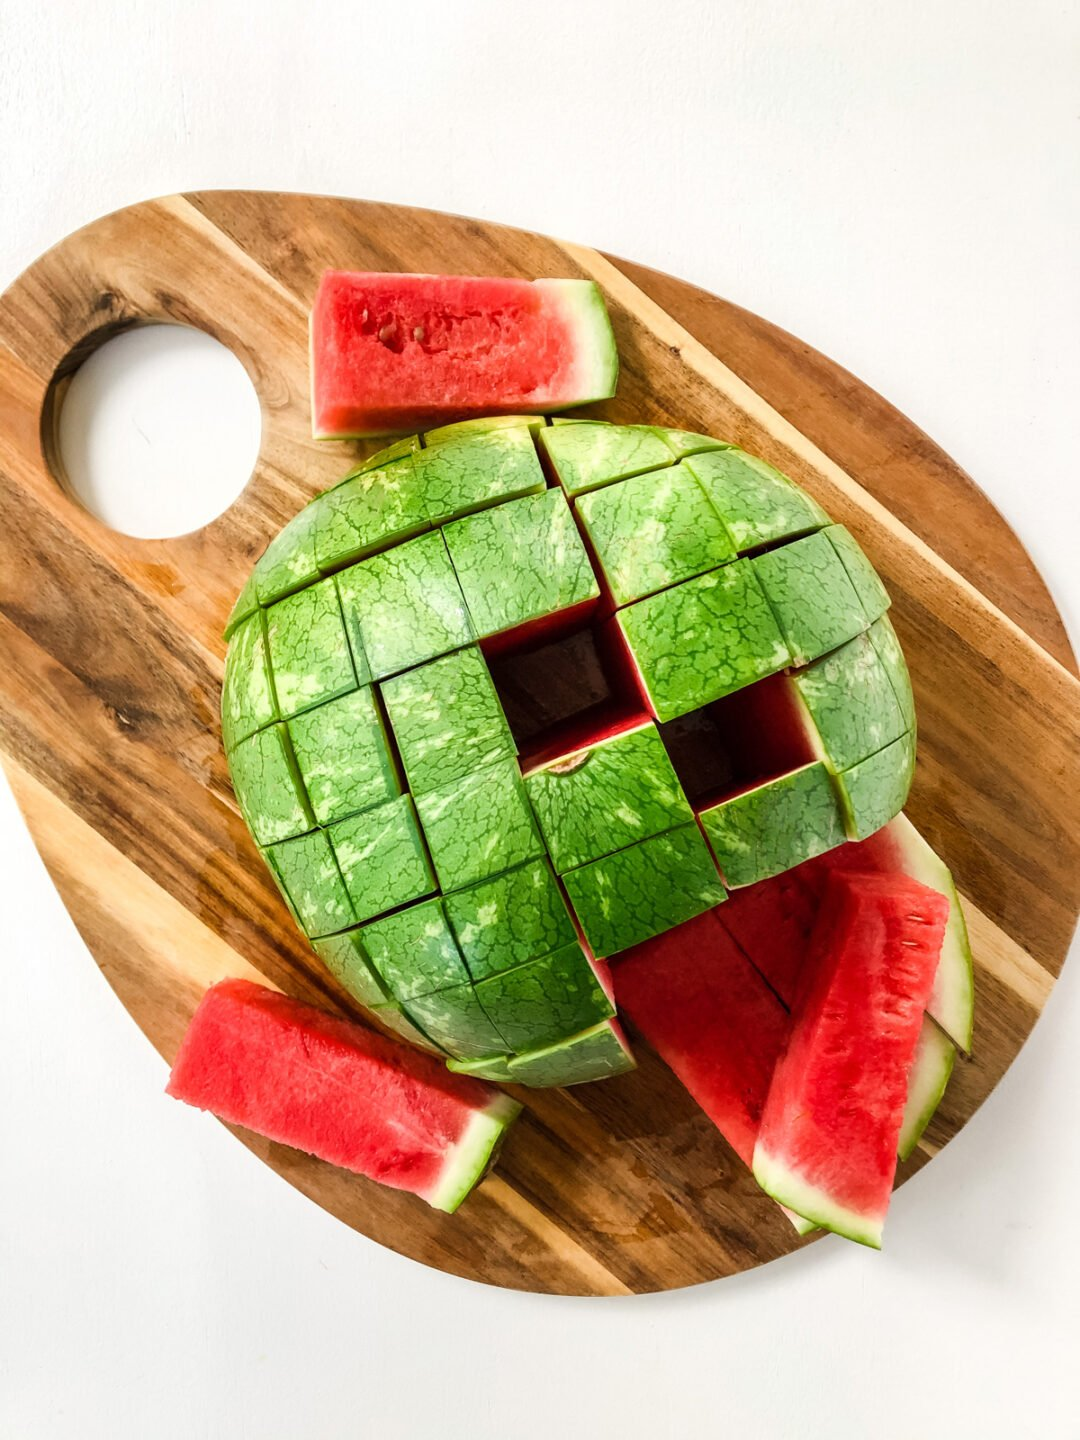 A board with watermelon cut into individual serving sticks